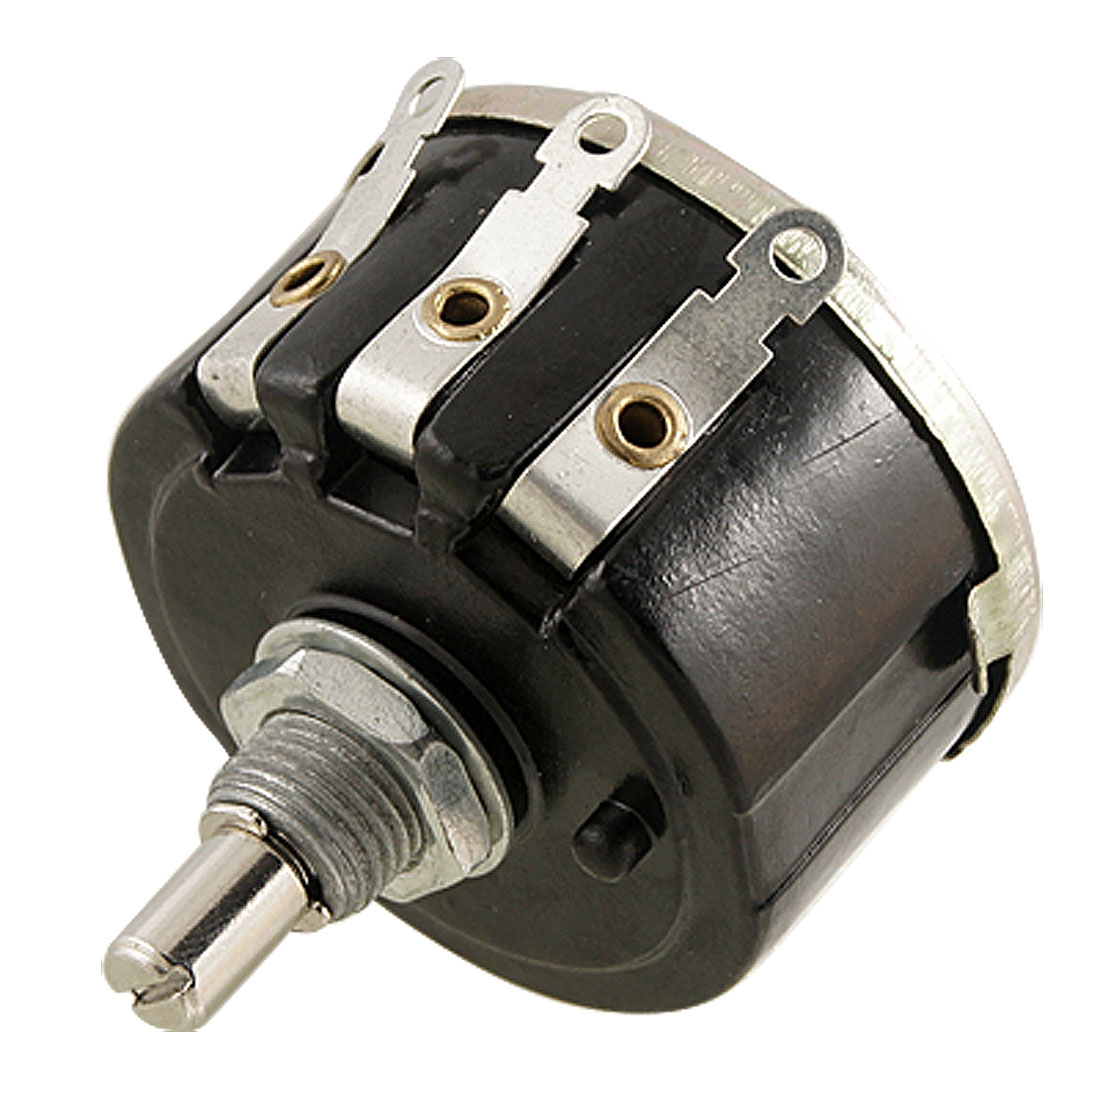 WX112(050) 5 Watt 4.7K ohm Single Turn Wire Wound Potentiometer